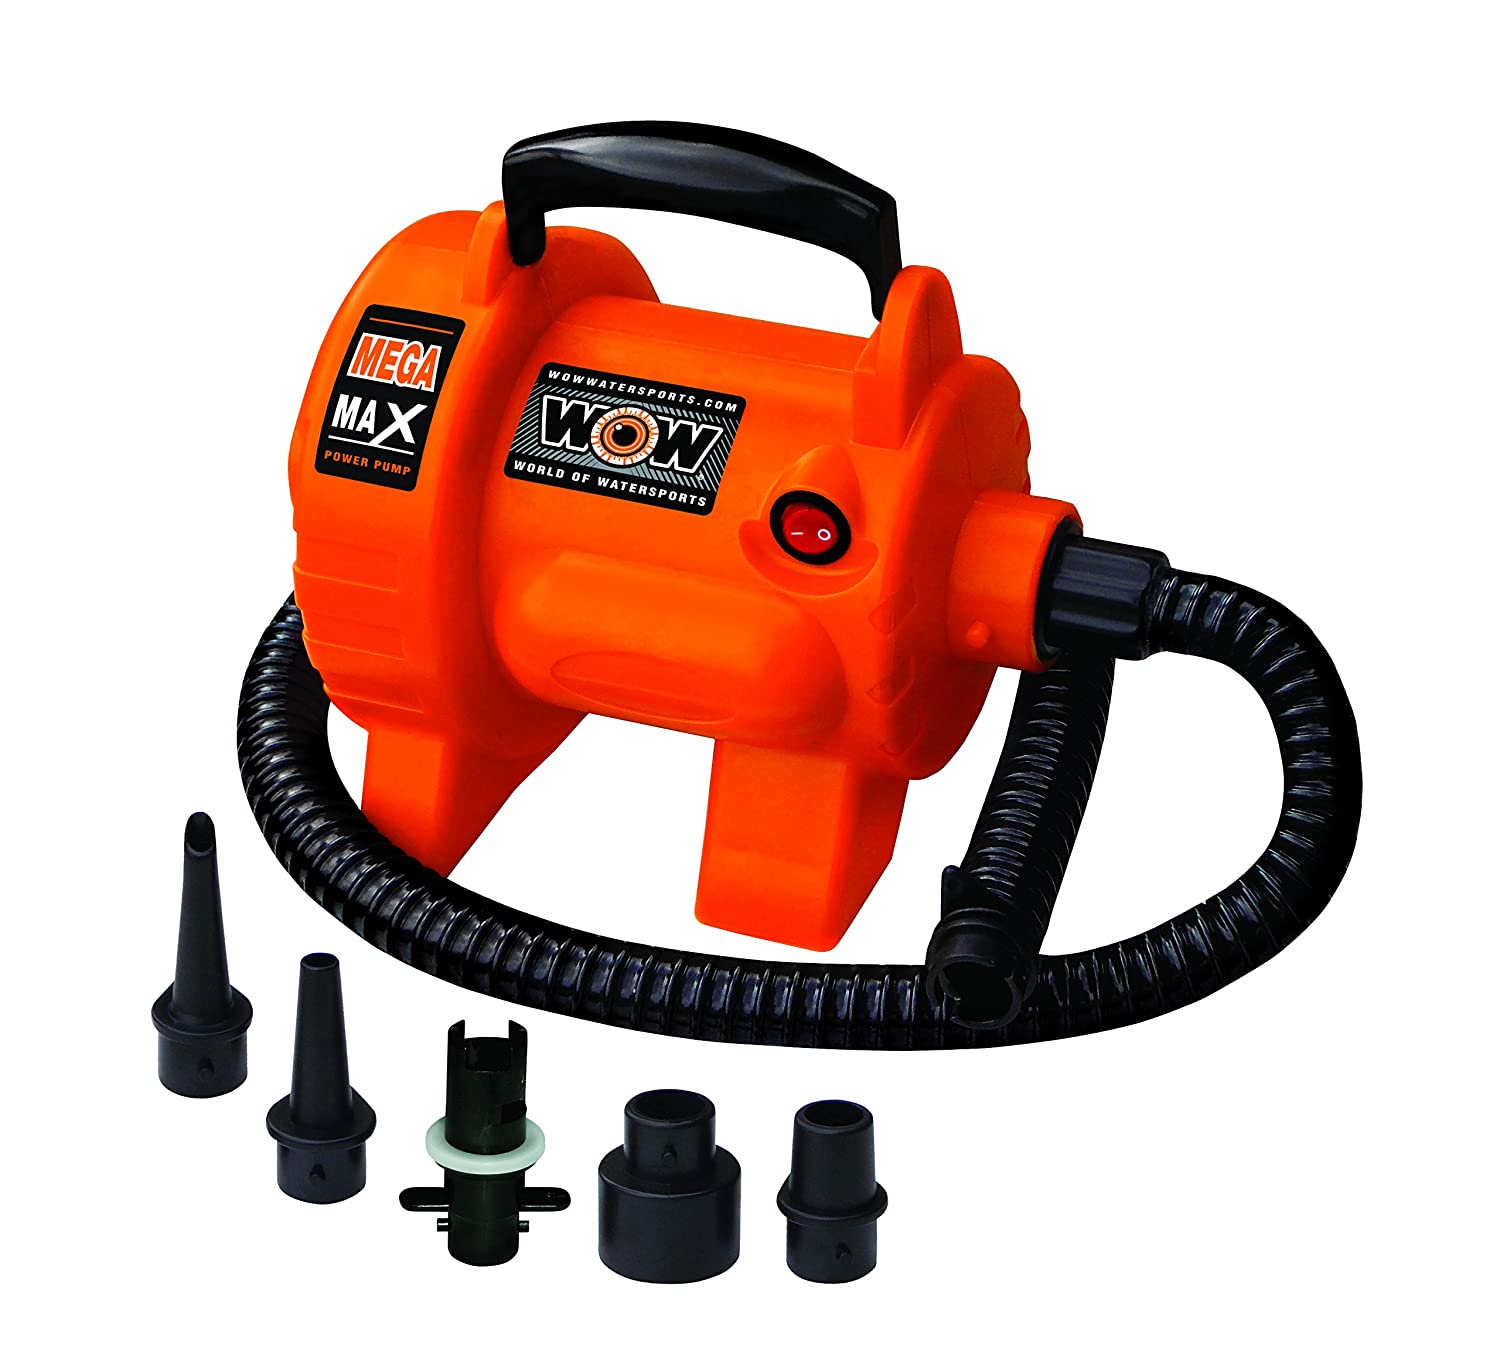 Wow World of Watersports 16-4000 Mega Max 120 Volt Electric Air Pump 12 Foot Cord High Pressure United Sporting Company